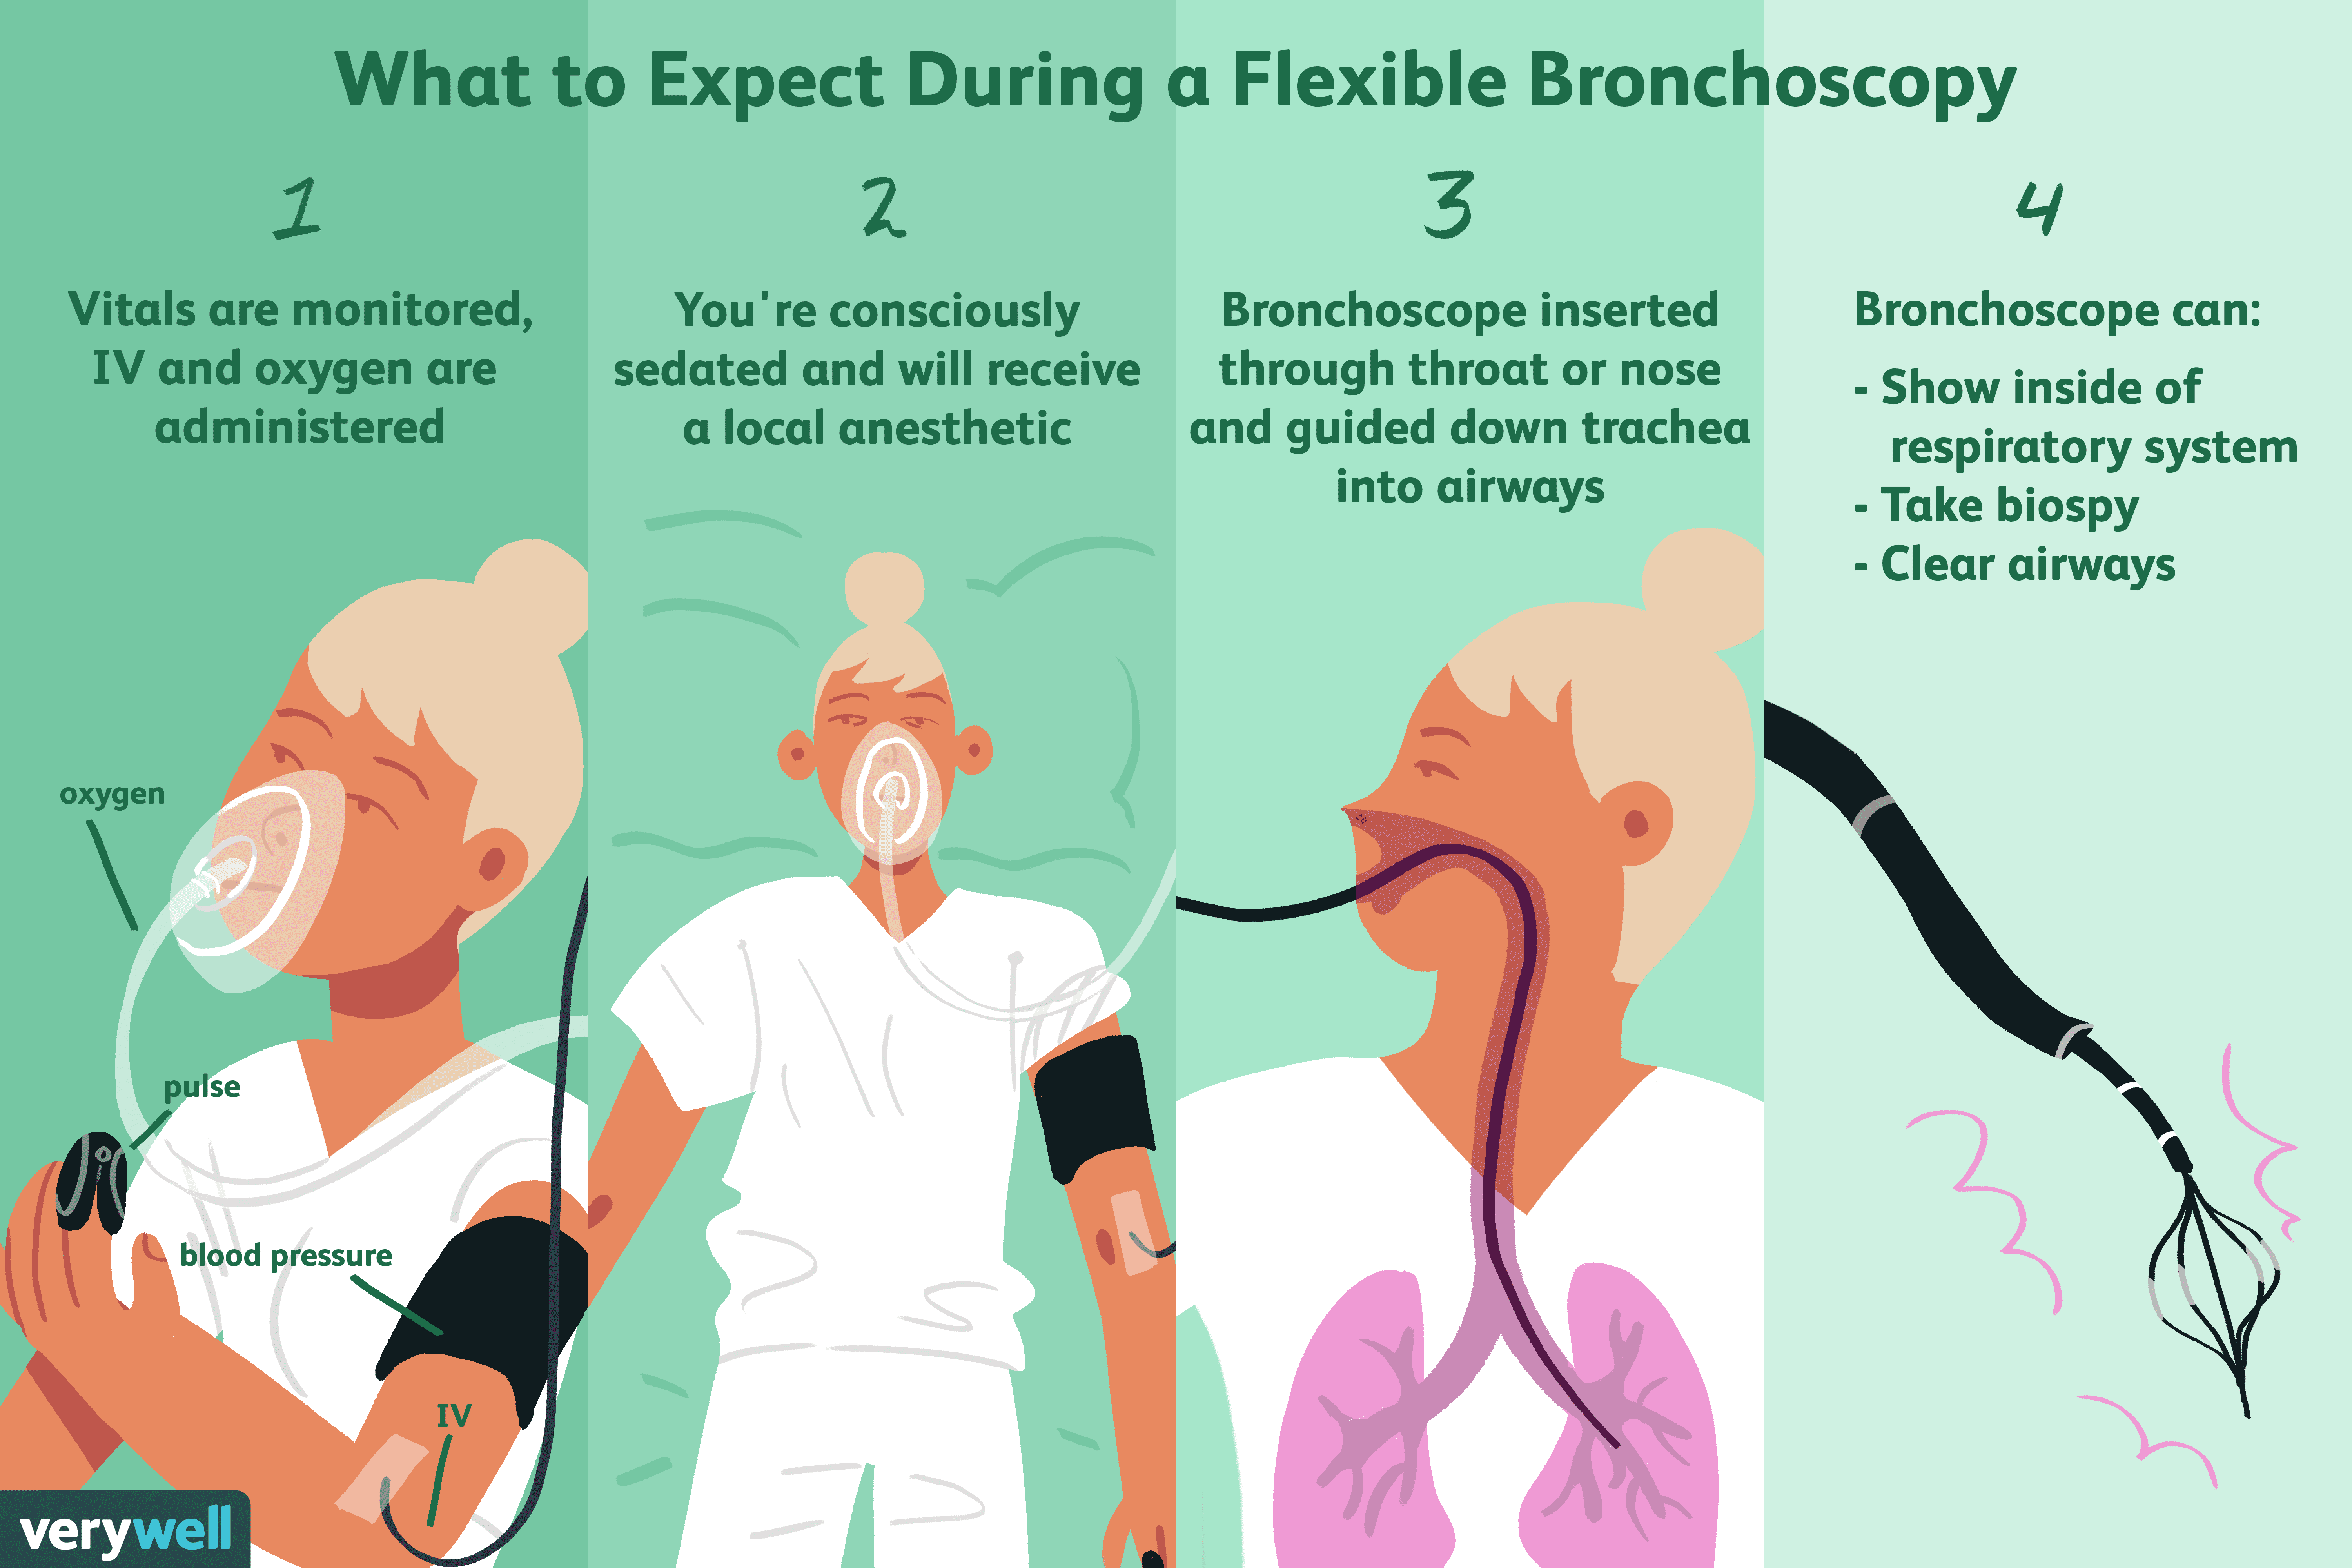 Bronchoscopy Uses Side Effects Procedure Results Respiratory System Function And Diagrams Breathing Oxygen Purpose Of The Test